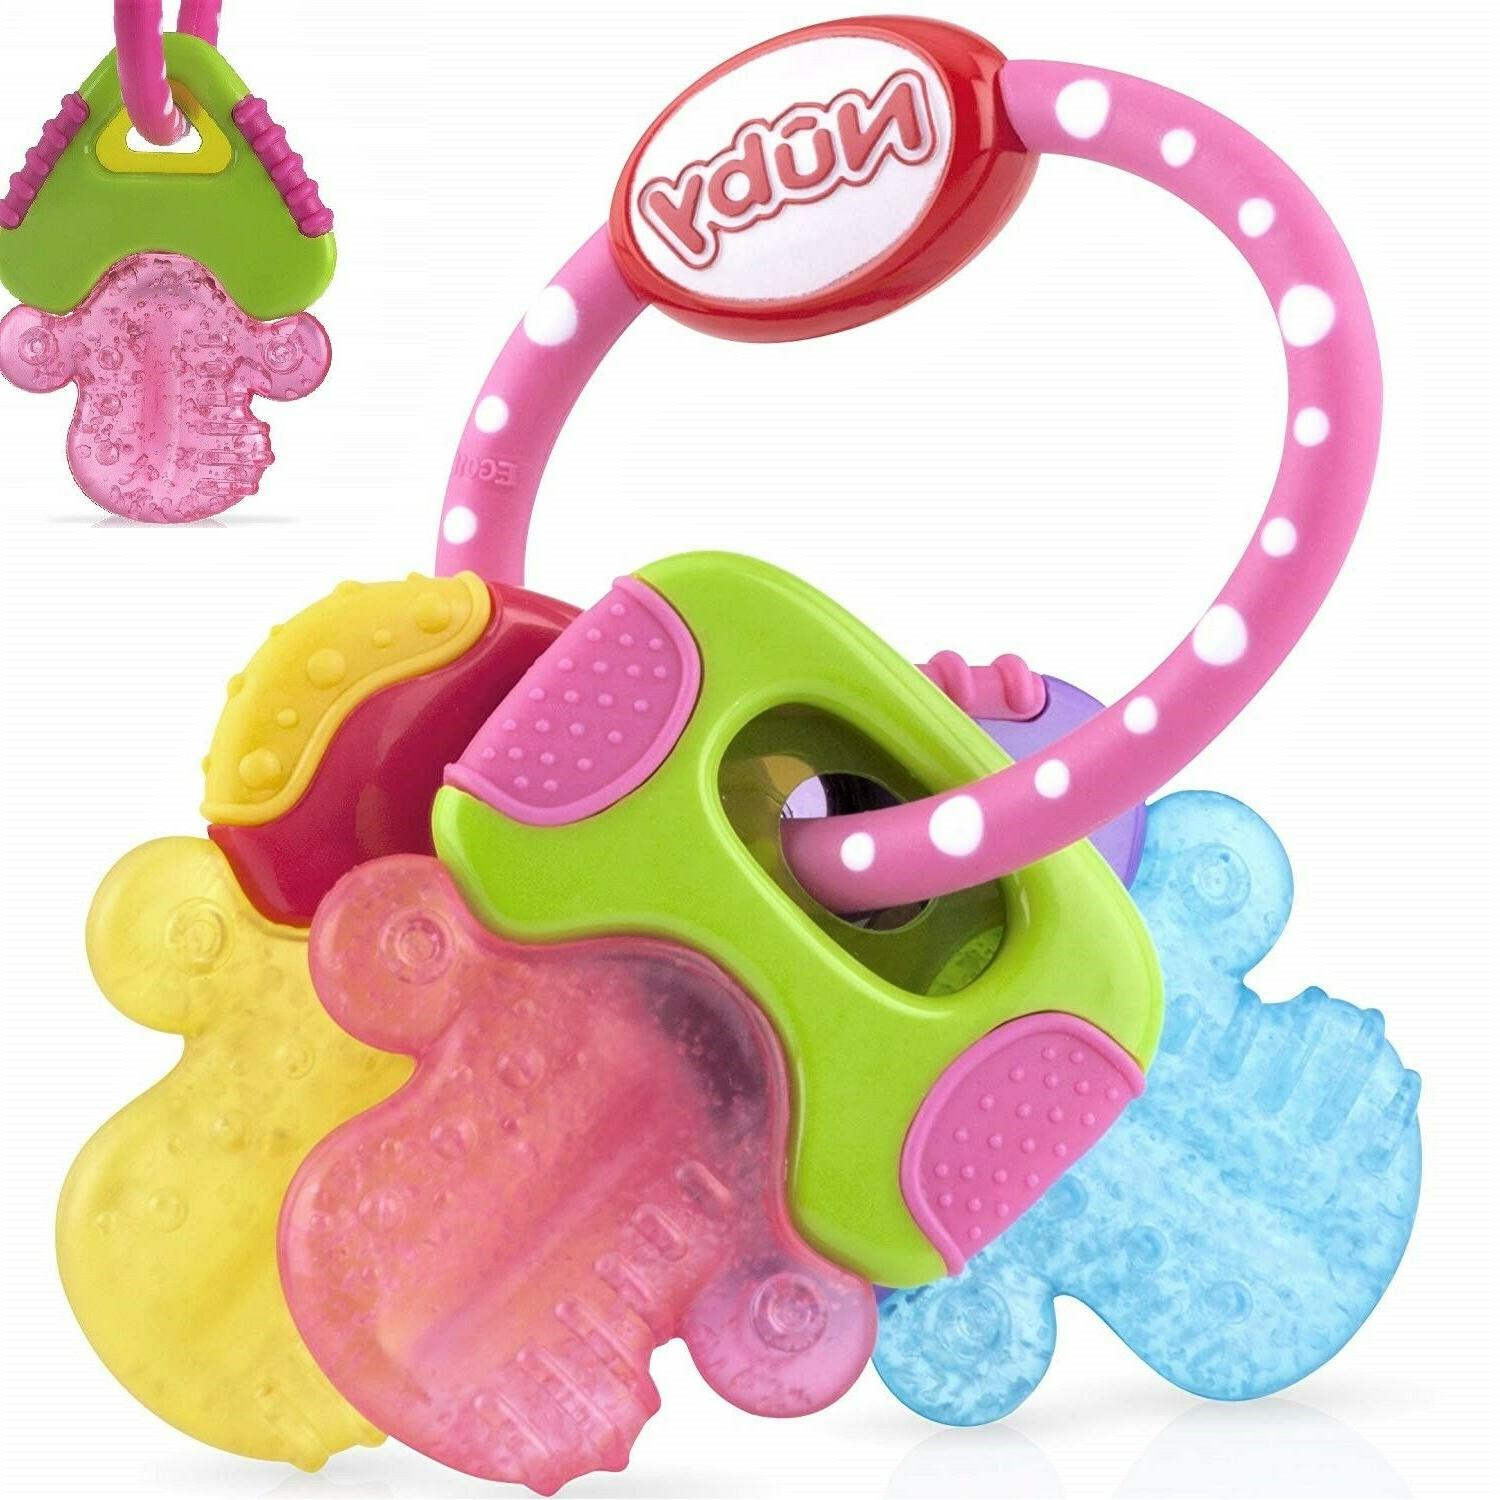 Nuby Ice Gel Teether Keys Baby Toy Soft Teething Soothing Bite Multi-surfaced